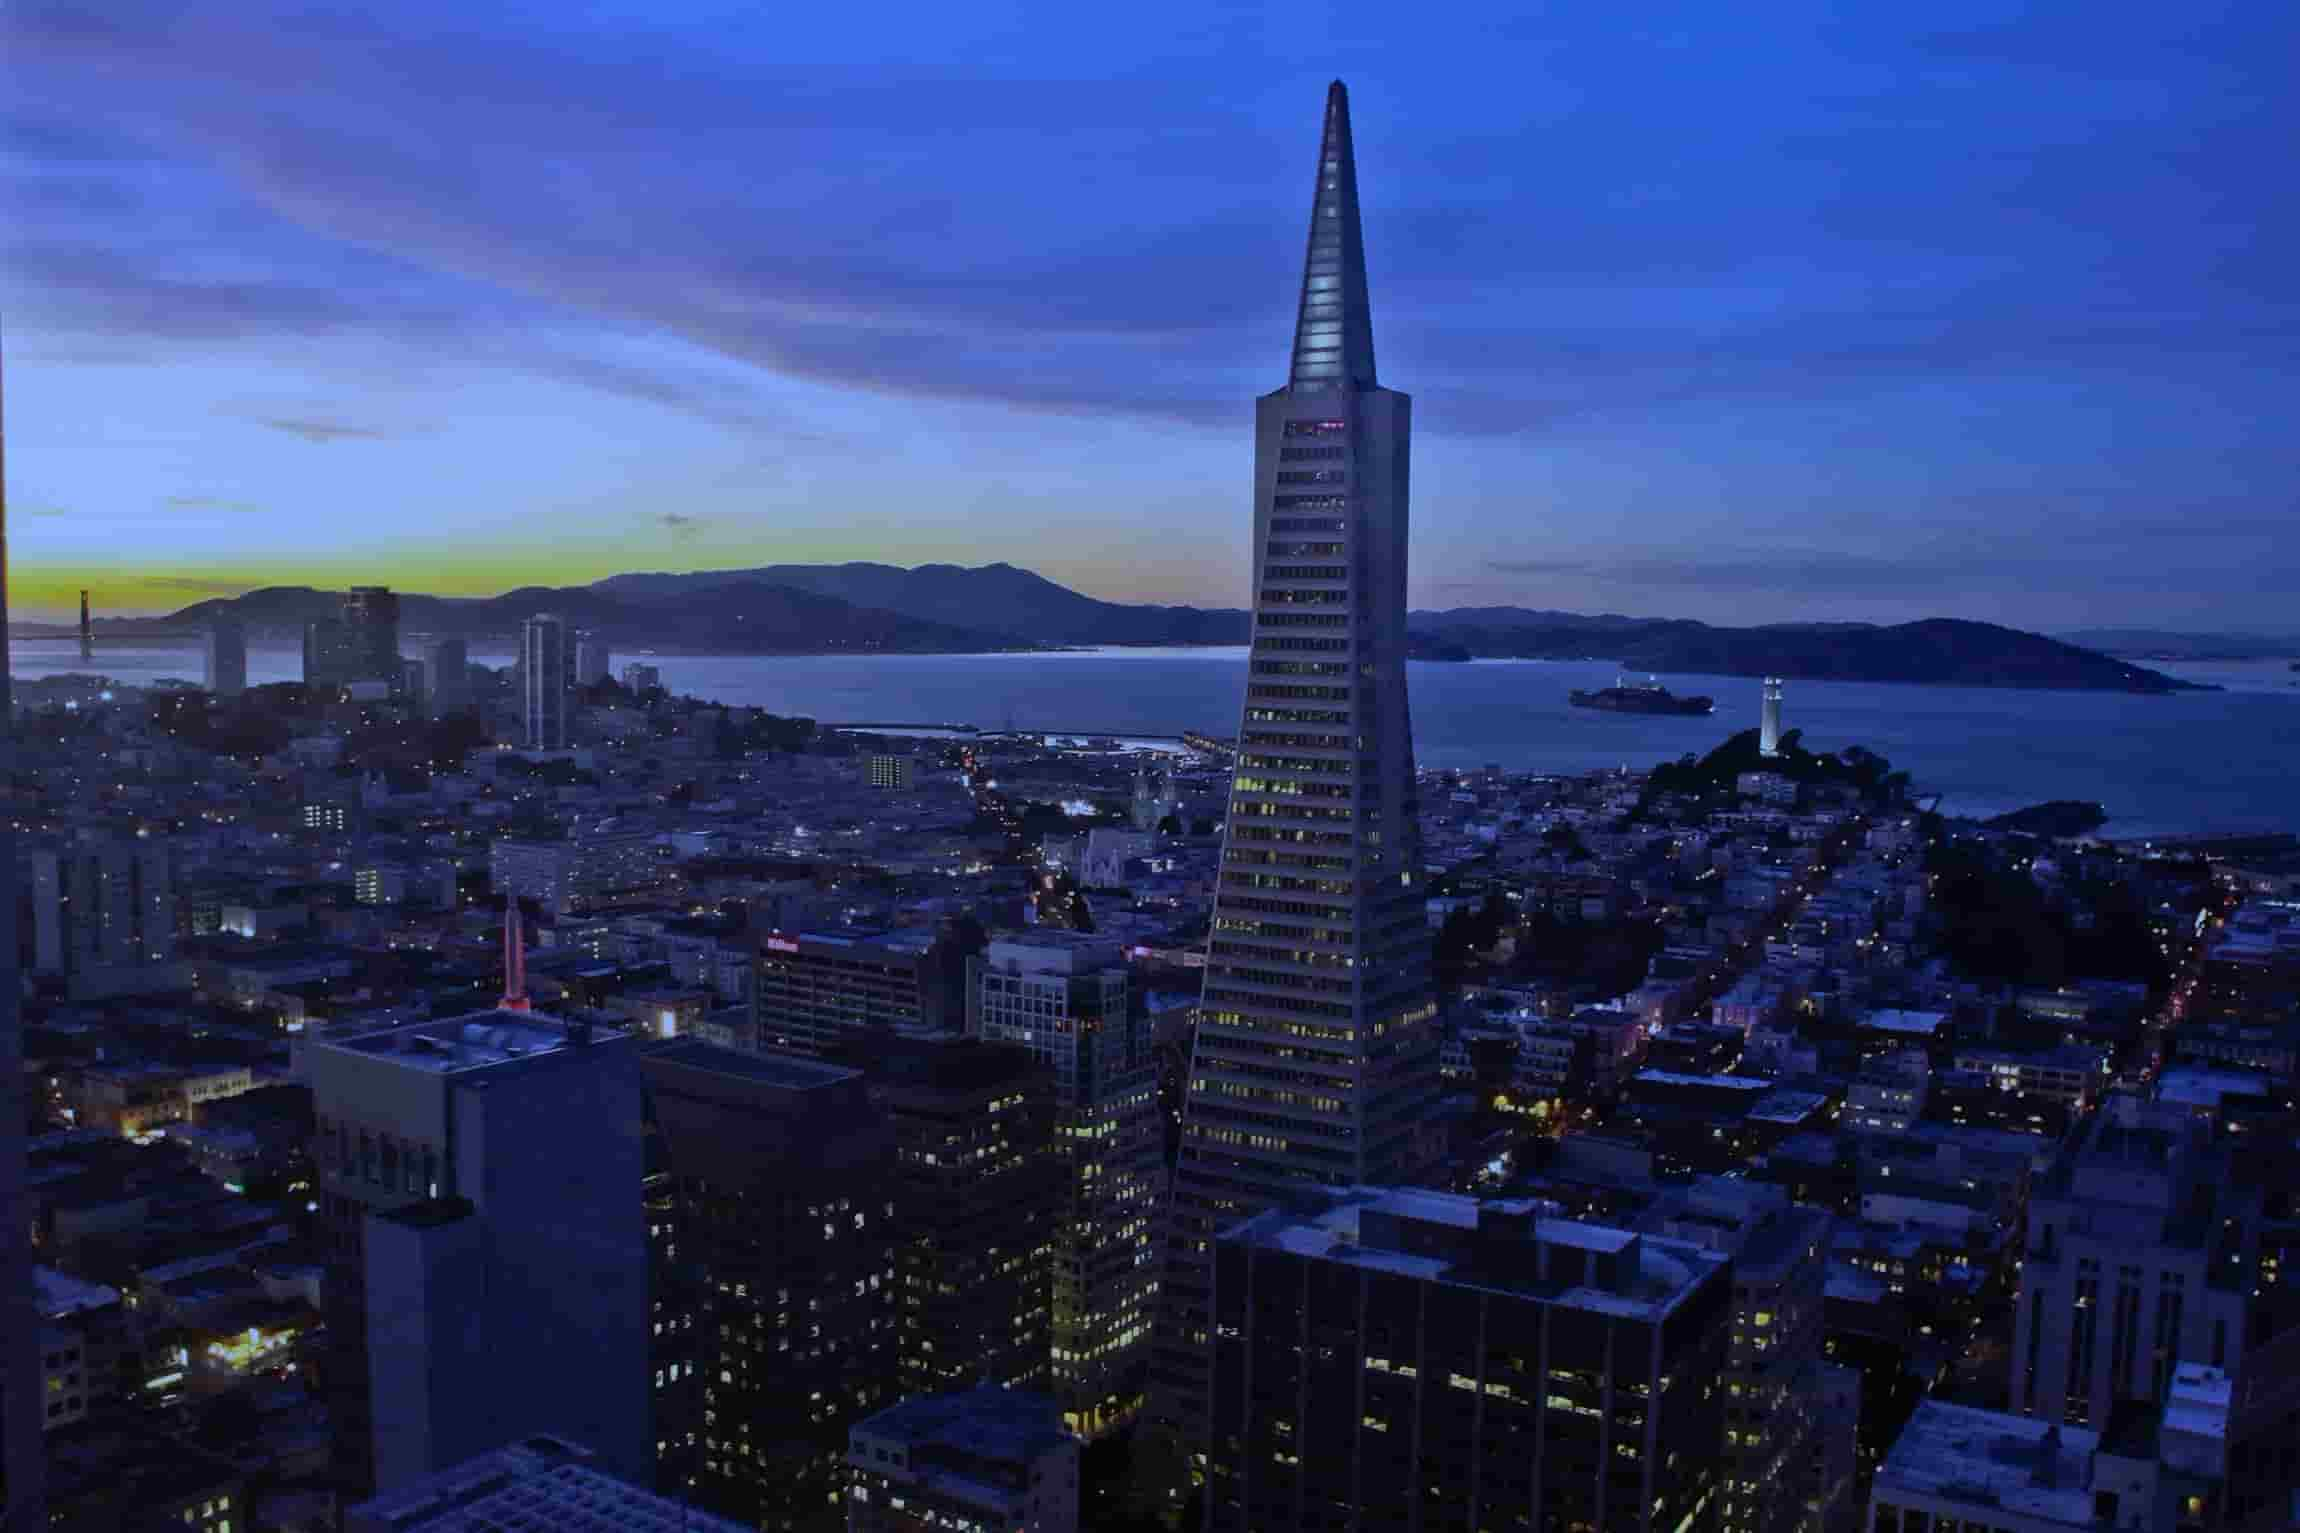 San Francisco Transamerica Building Aerial View